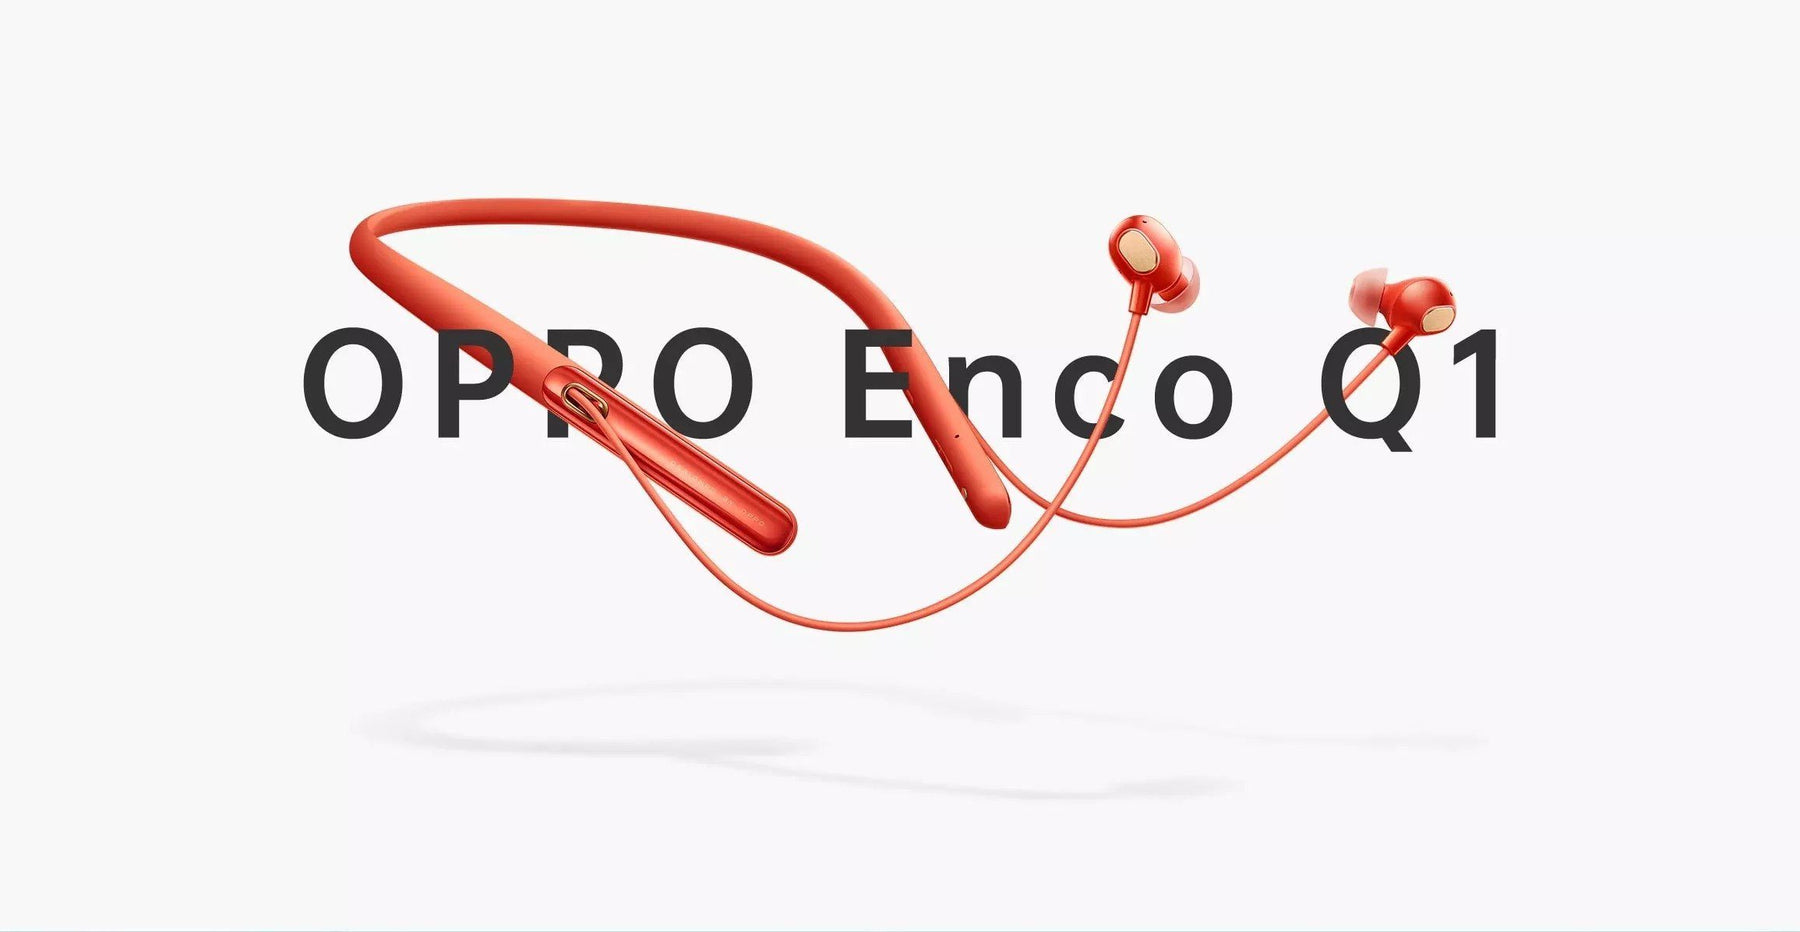 Oppo Enco Q1 Wireless Noise-canceling Headphones Go On Sale Now | Hifigo